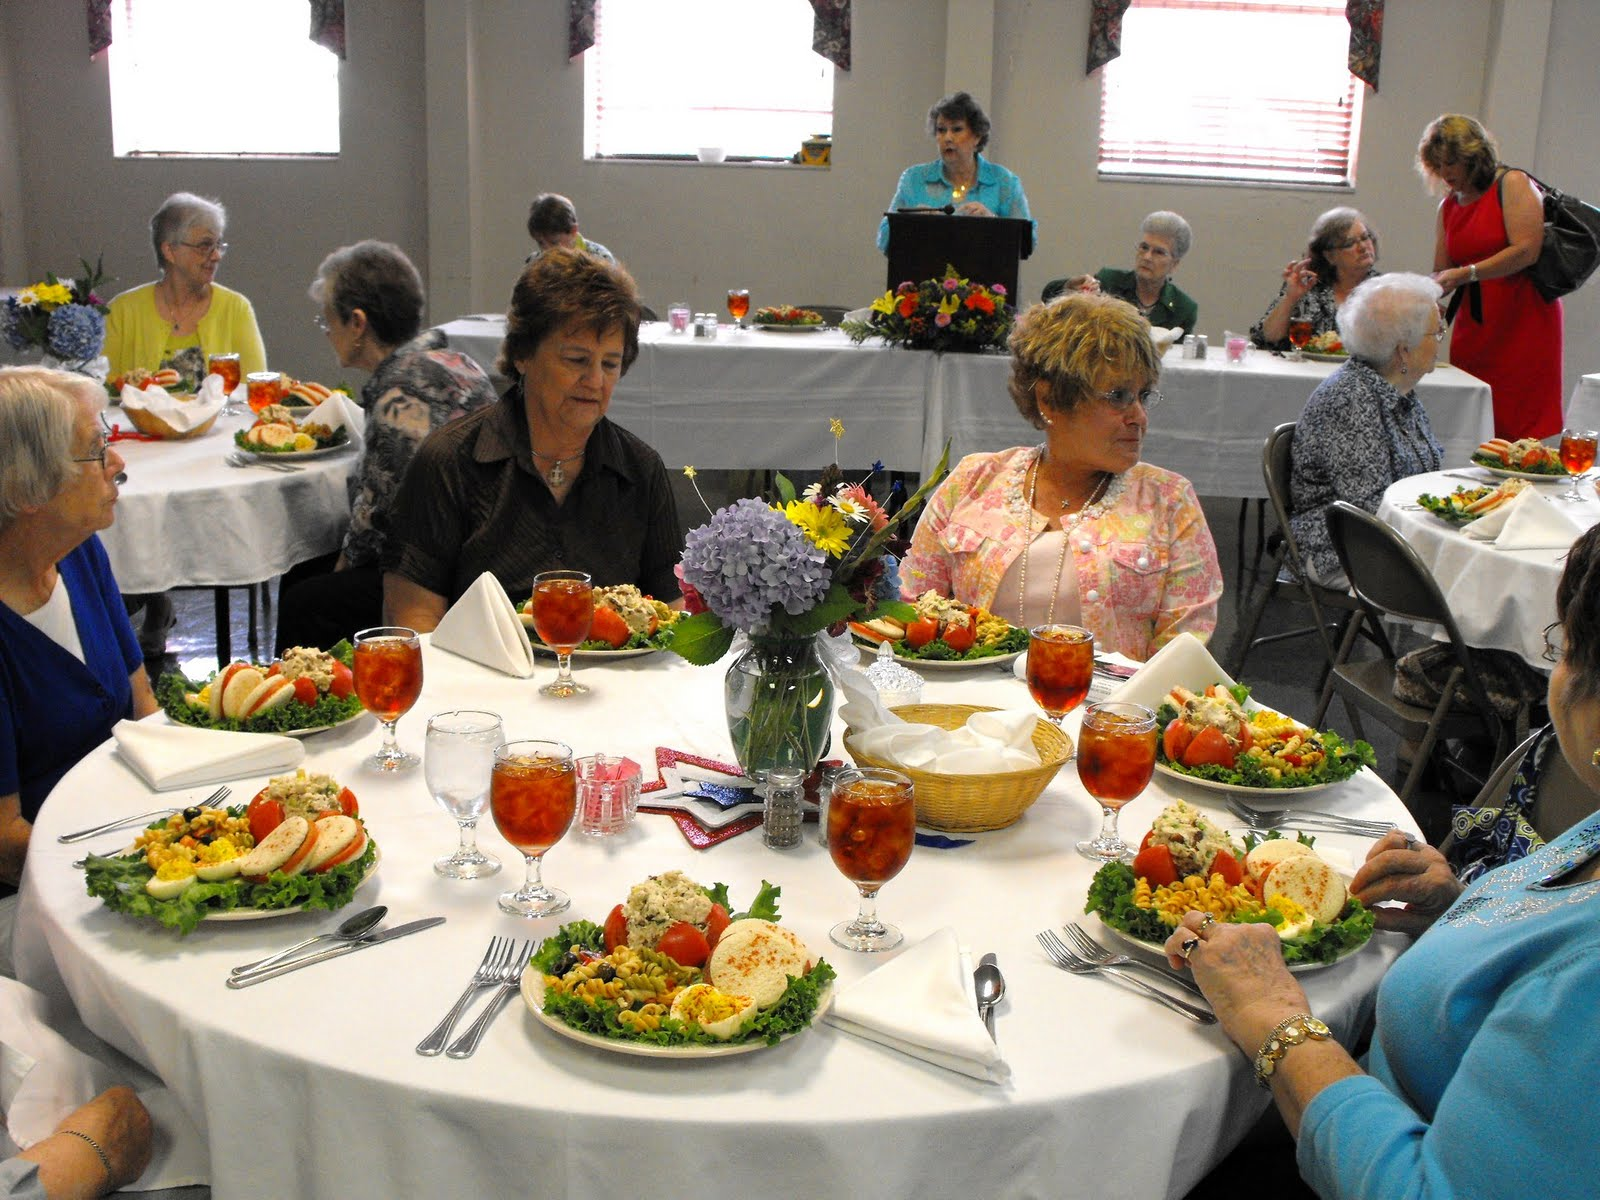 great meal was enjoyed by all the attendees.